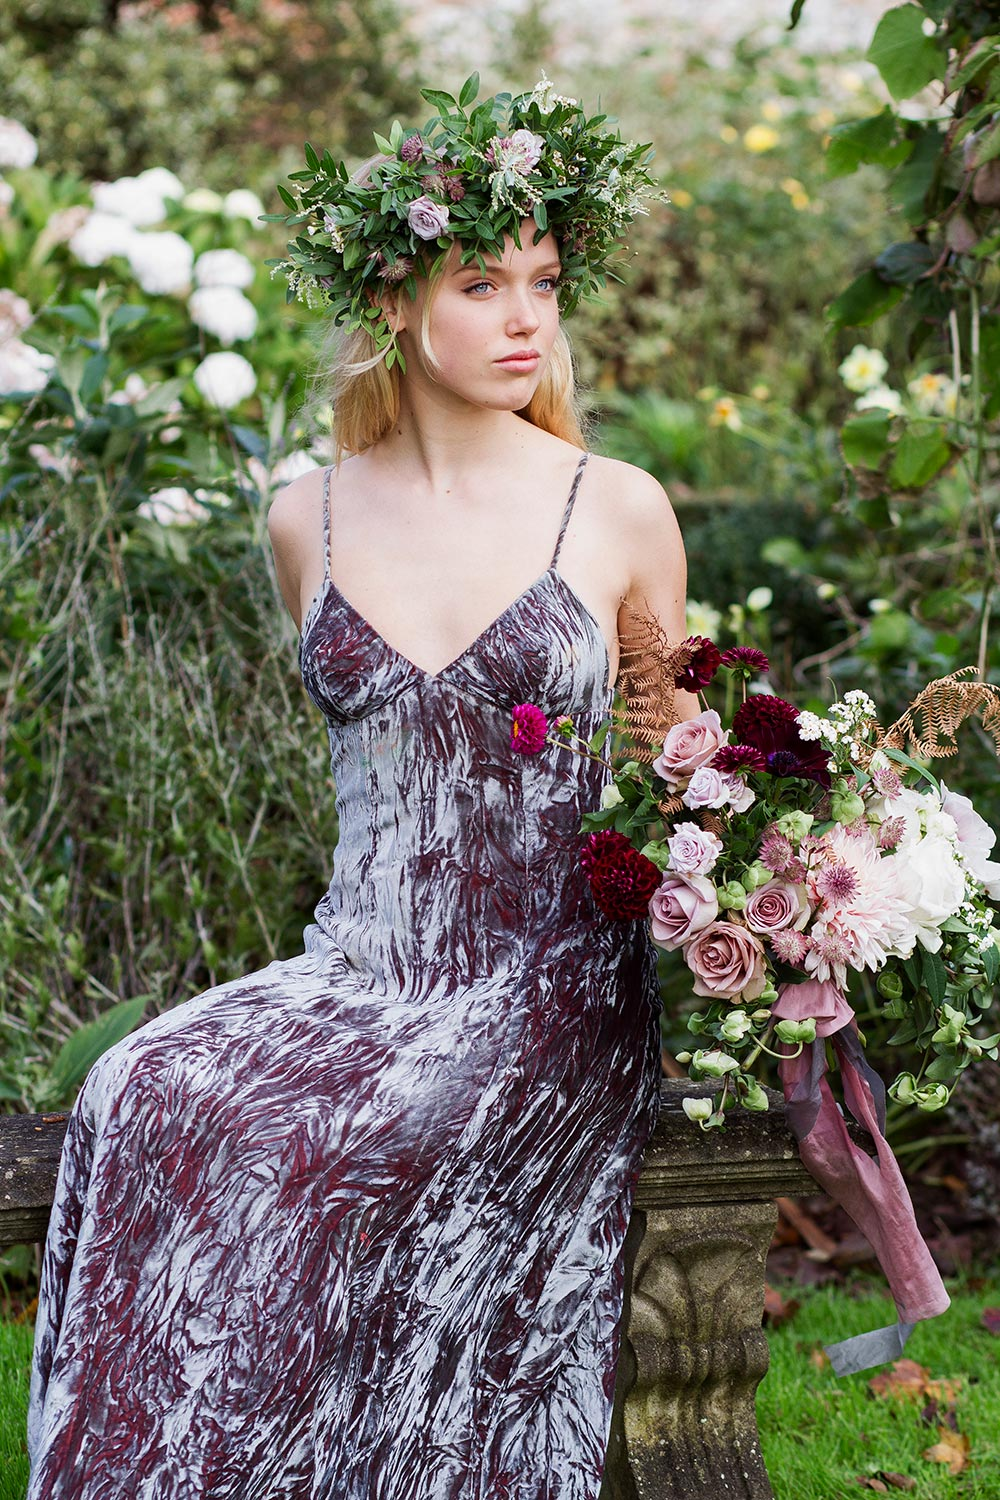 16-wilde-thyme-photoshoot-styling-floral-crown.jpg